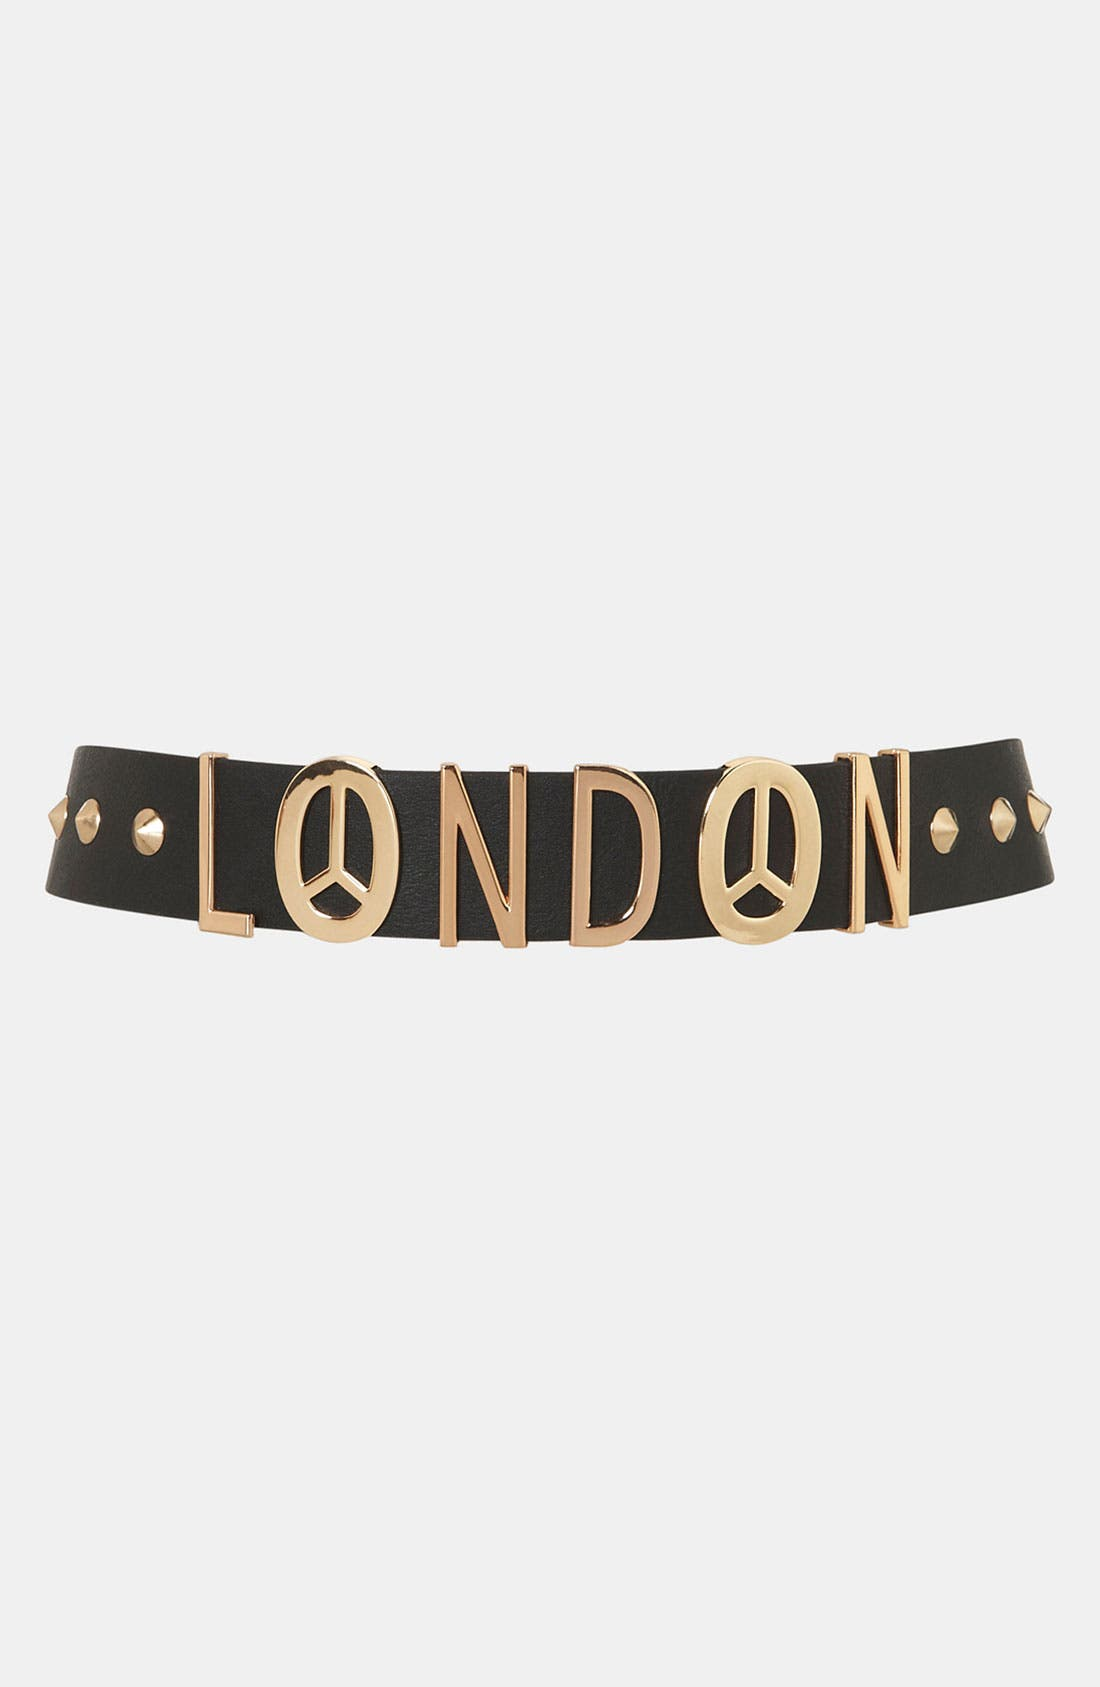 Alternate Image 1 Selected - Topshop 'London Lettered' Belt